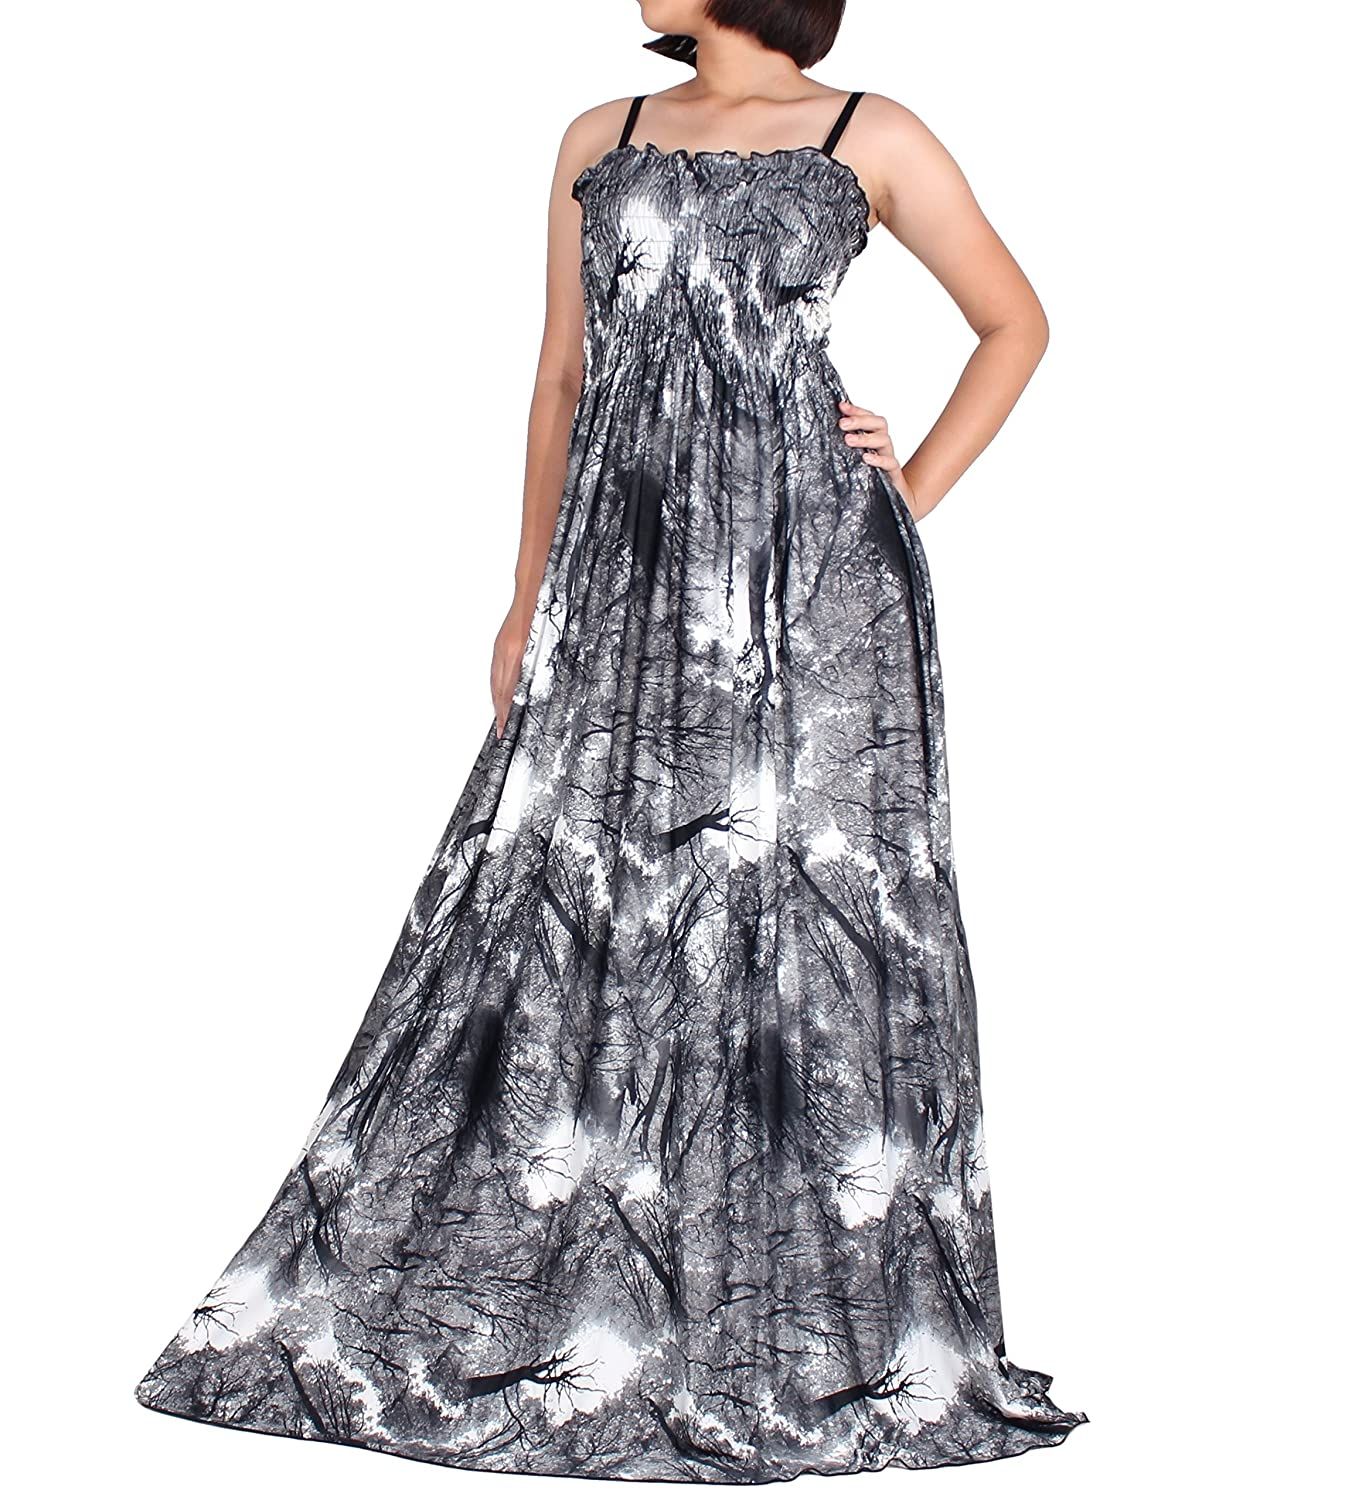 81e4c3d61bb Women Maxi Plus Size Black White Flare Boho Dress Summer Wedding Party  Artistic at Amazon Women s Clothing store